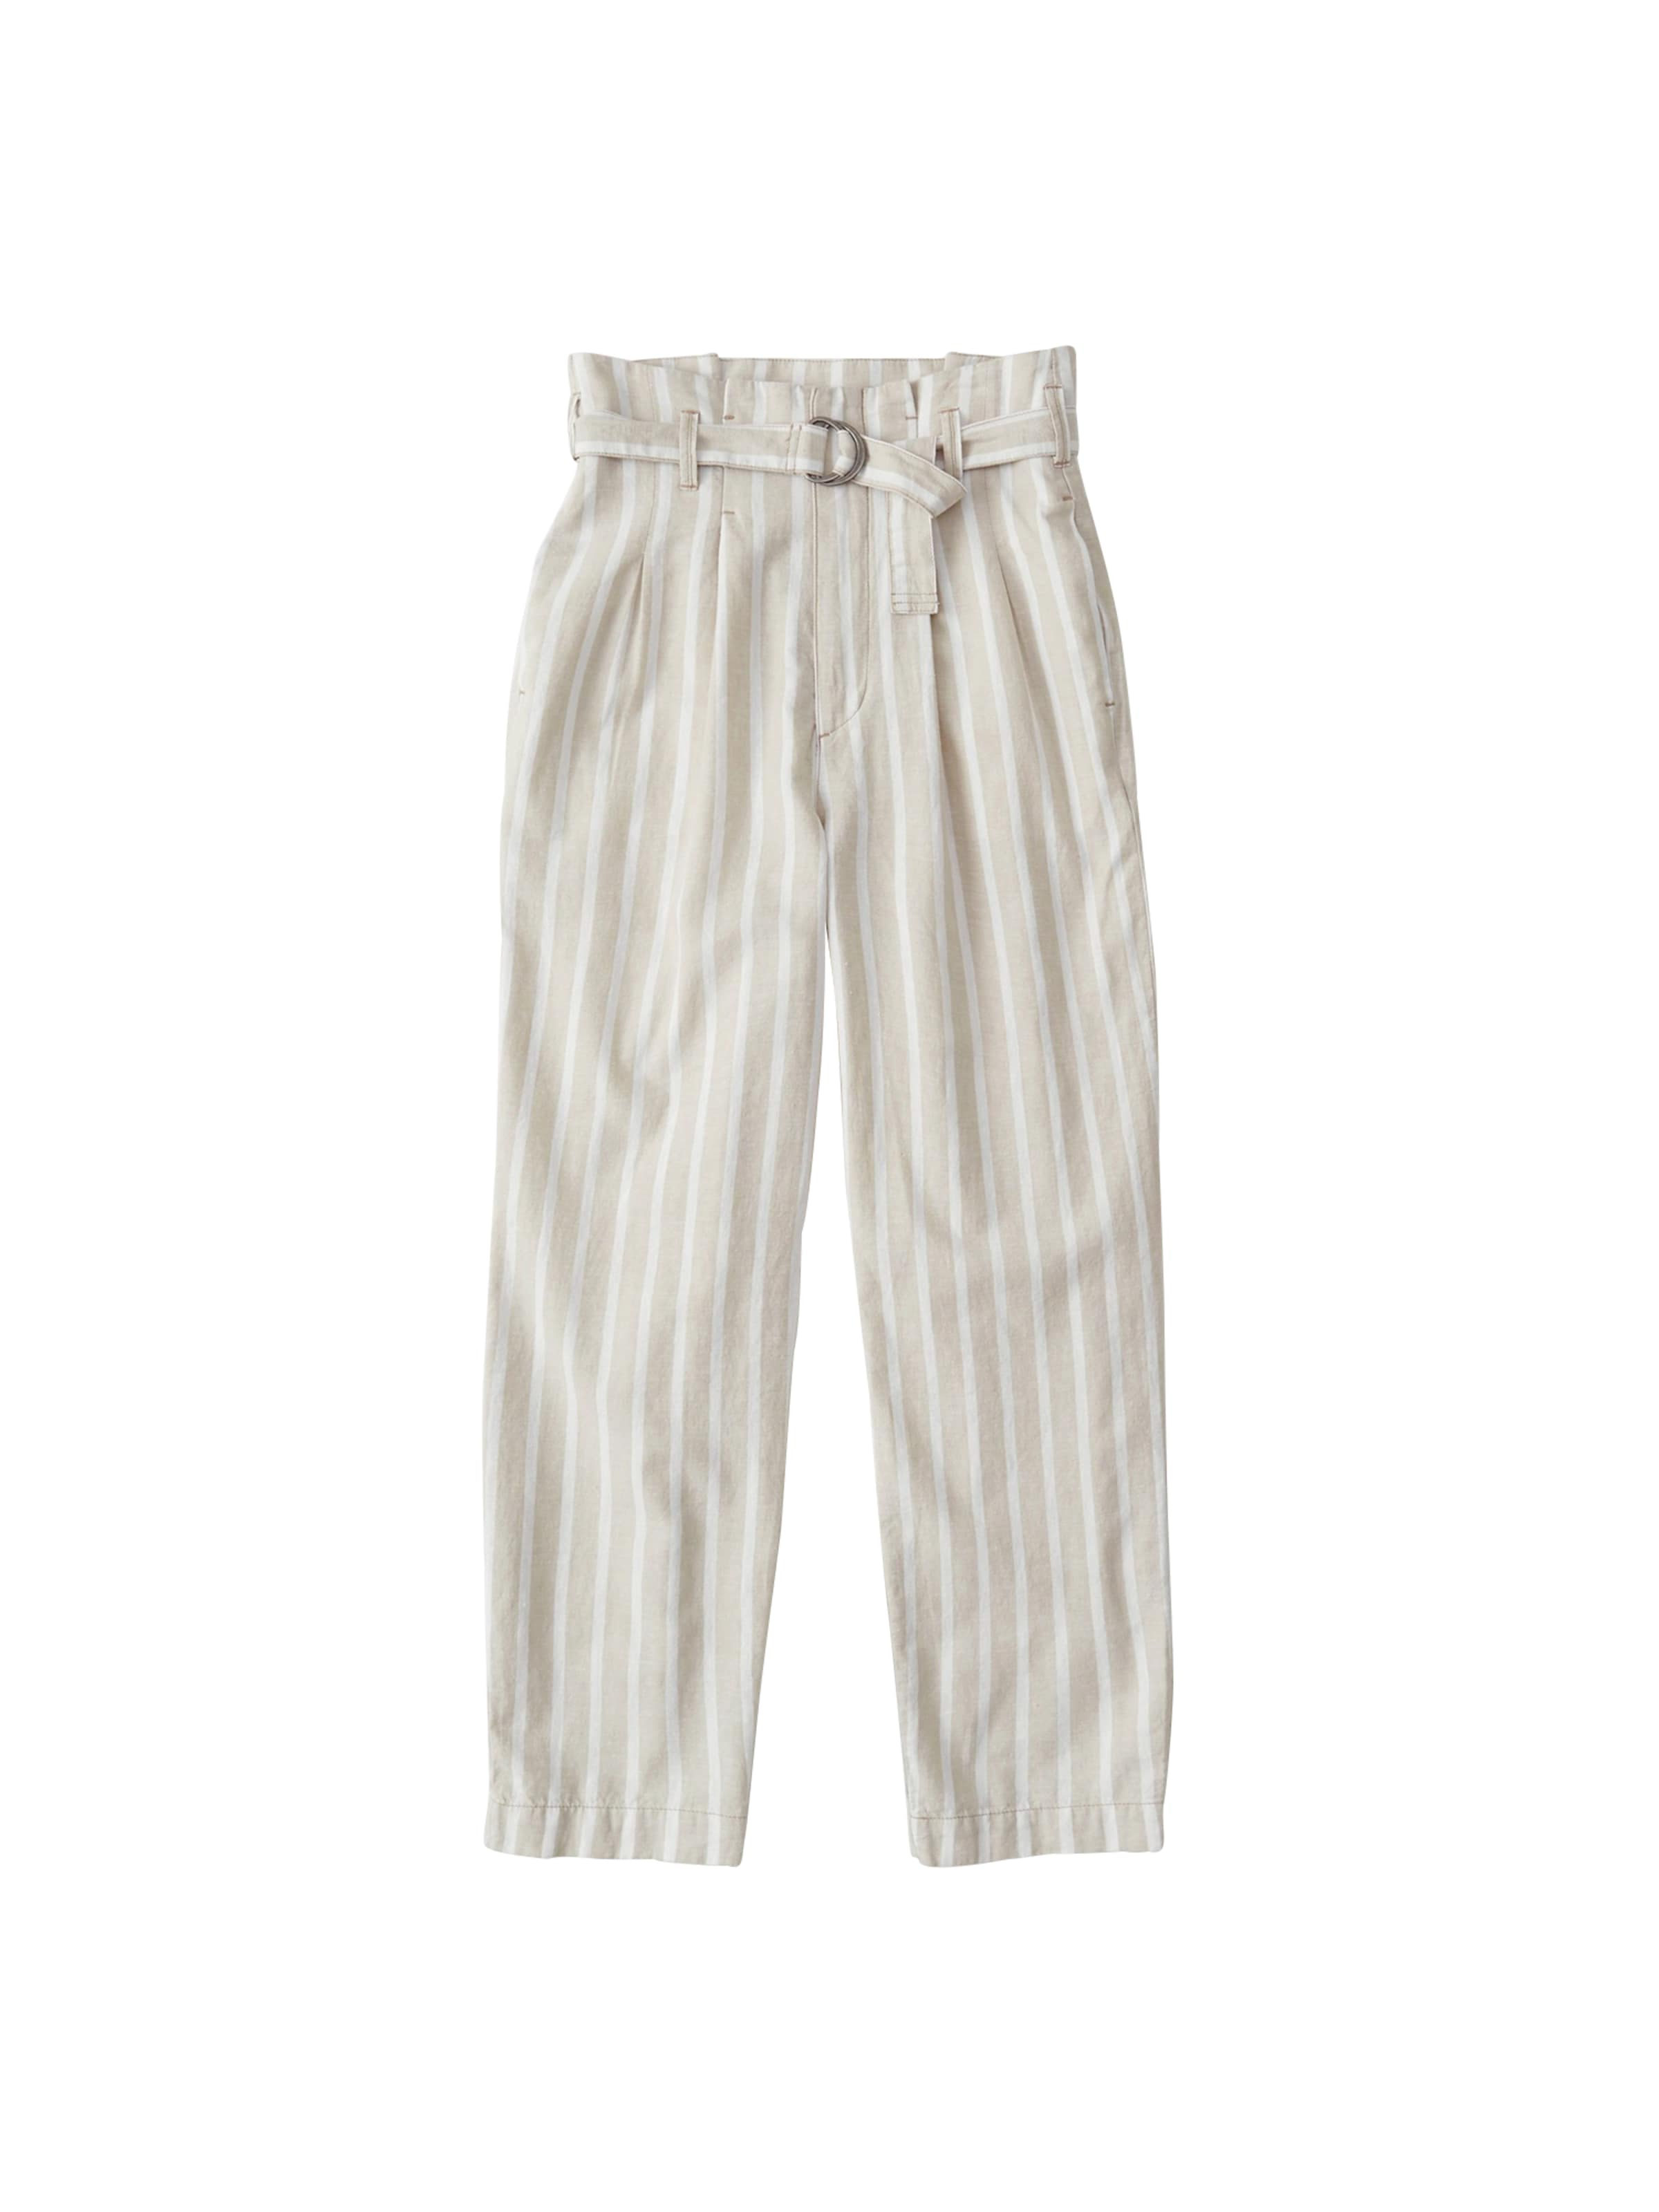 Fitch Hose Hose Fitch BeigeWeiß Abercrombieamp; In Abercrombieamp; In rsxQdthC